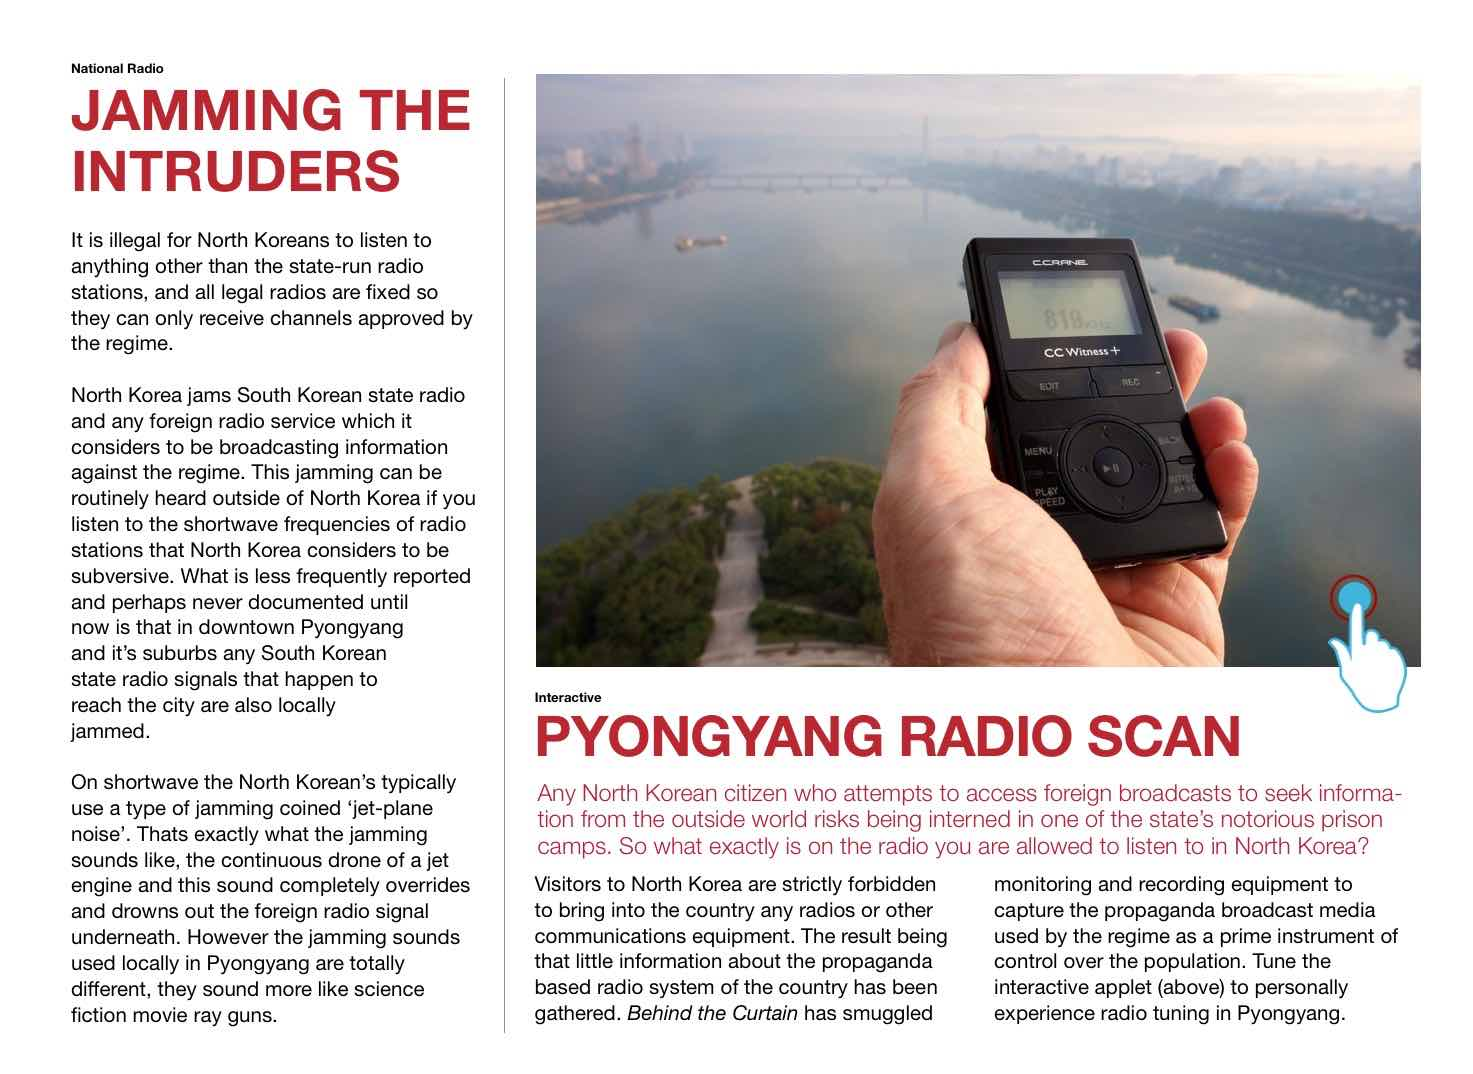 Curtain behind the curtain book - For Radio Enthusiasts There Is A Large Section Devoted To Nk Broadcasting In Its Various Forms Including An Excellent Summary Devoted To Both Shortwave